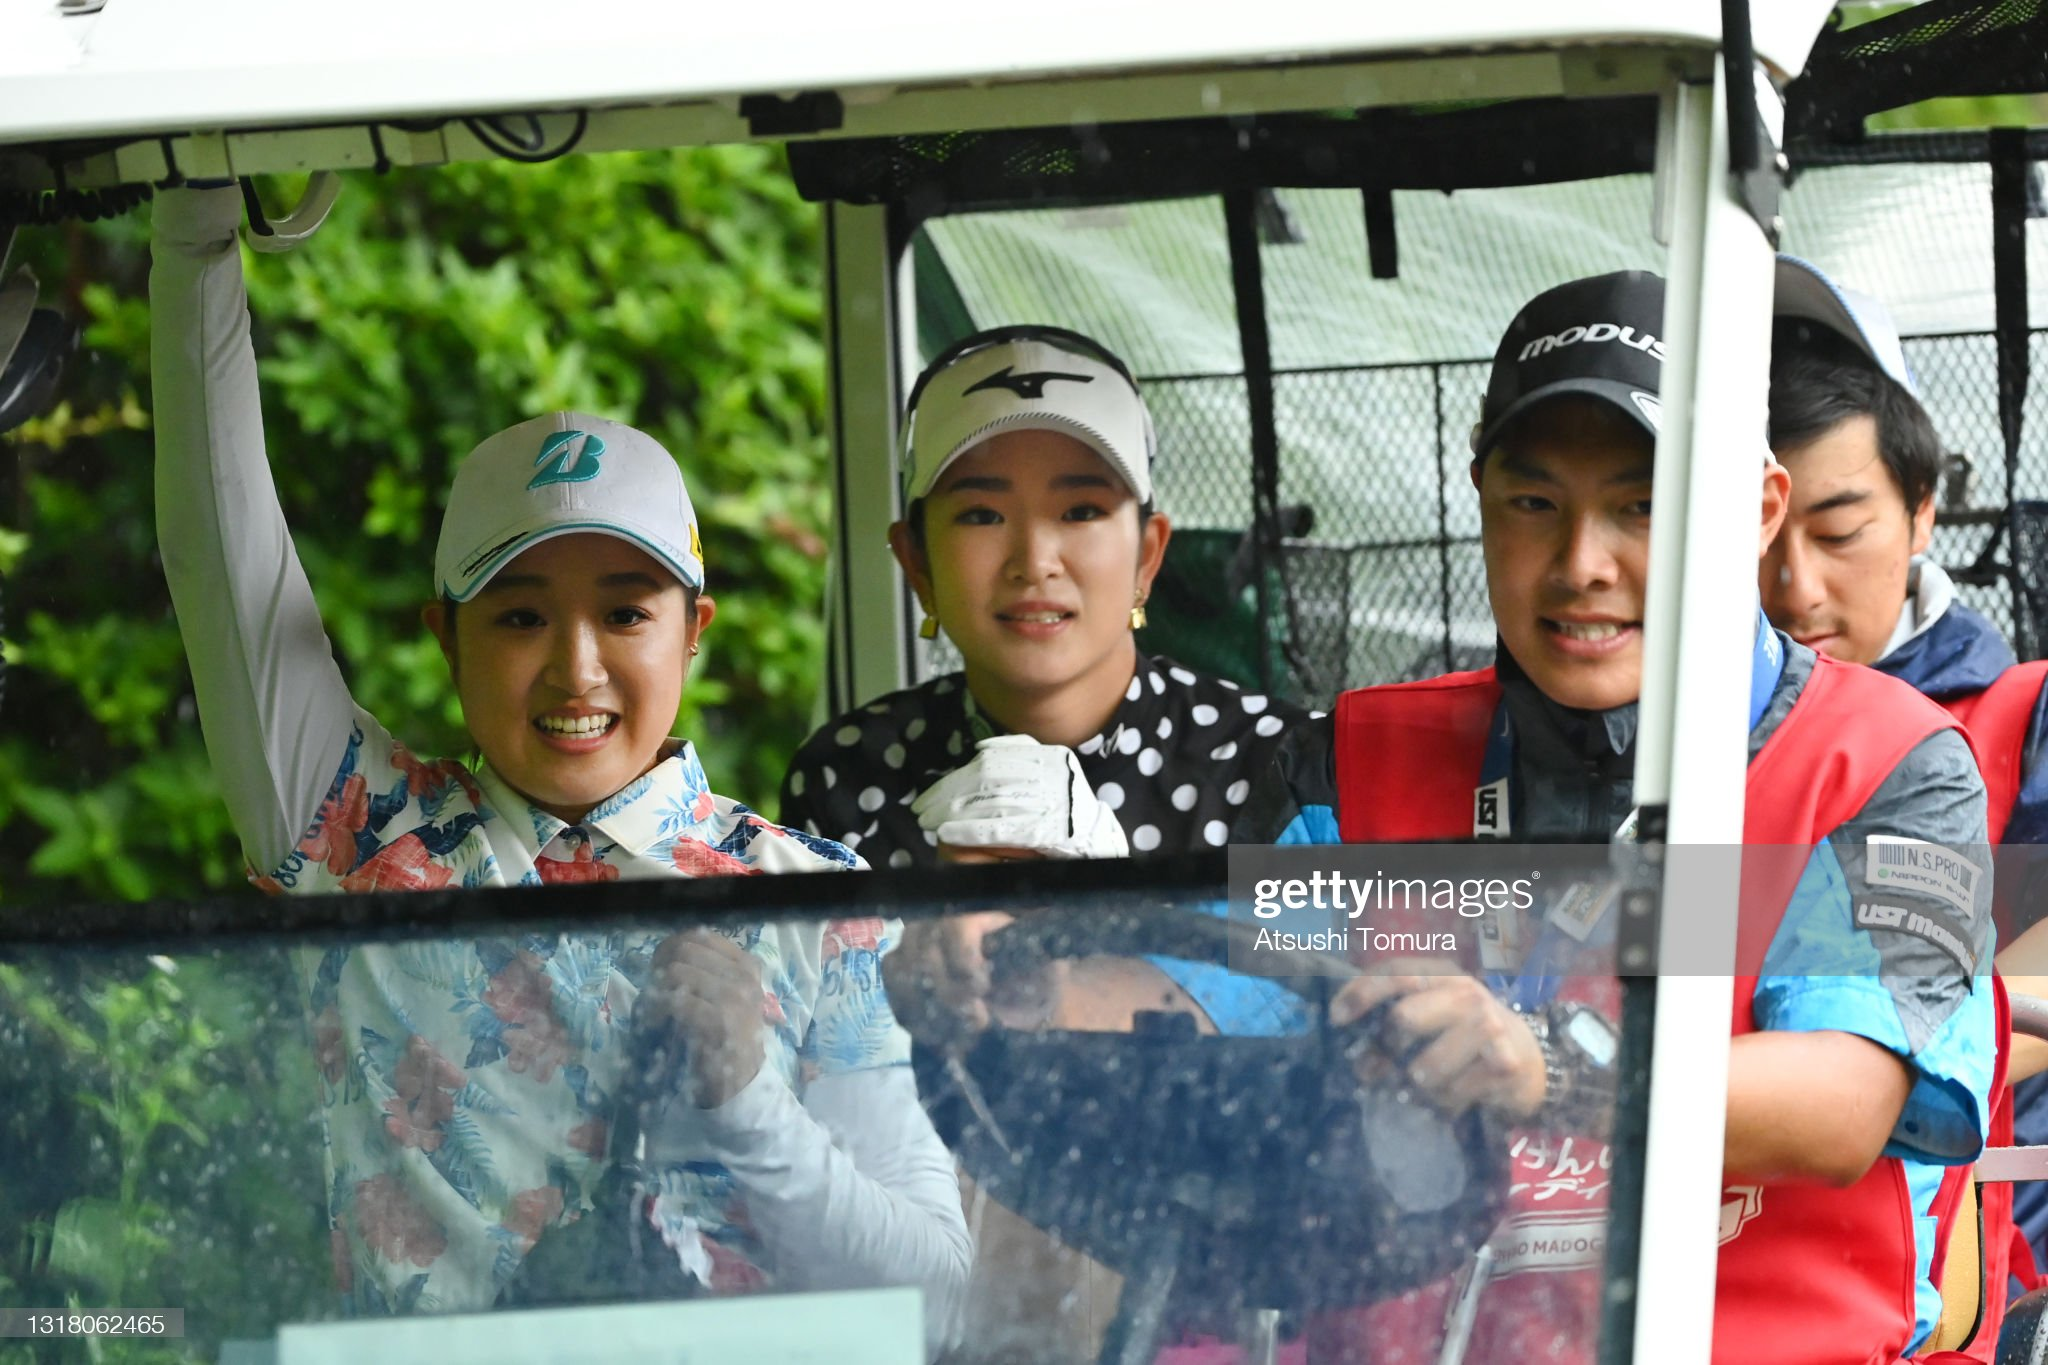 https://media.gettyimages.com/photos/yuna-takagi-and-erika-hara-of-japan-are-seen-on-a-cart-taken-to-the-picture-id1318062465?s=2048x2048